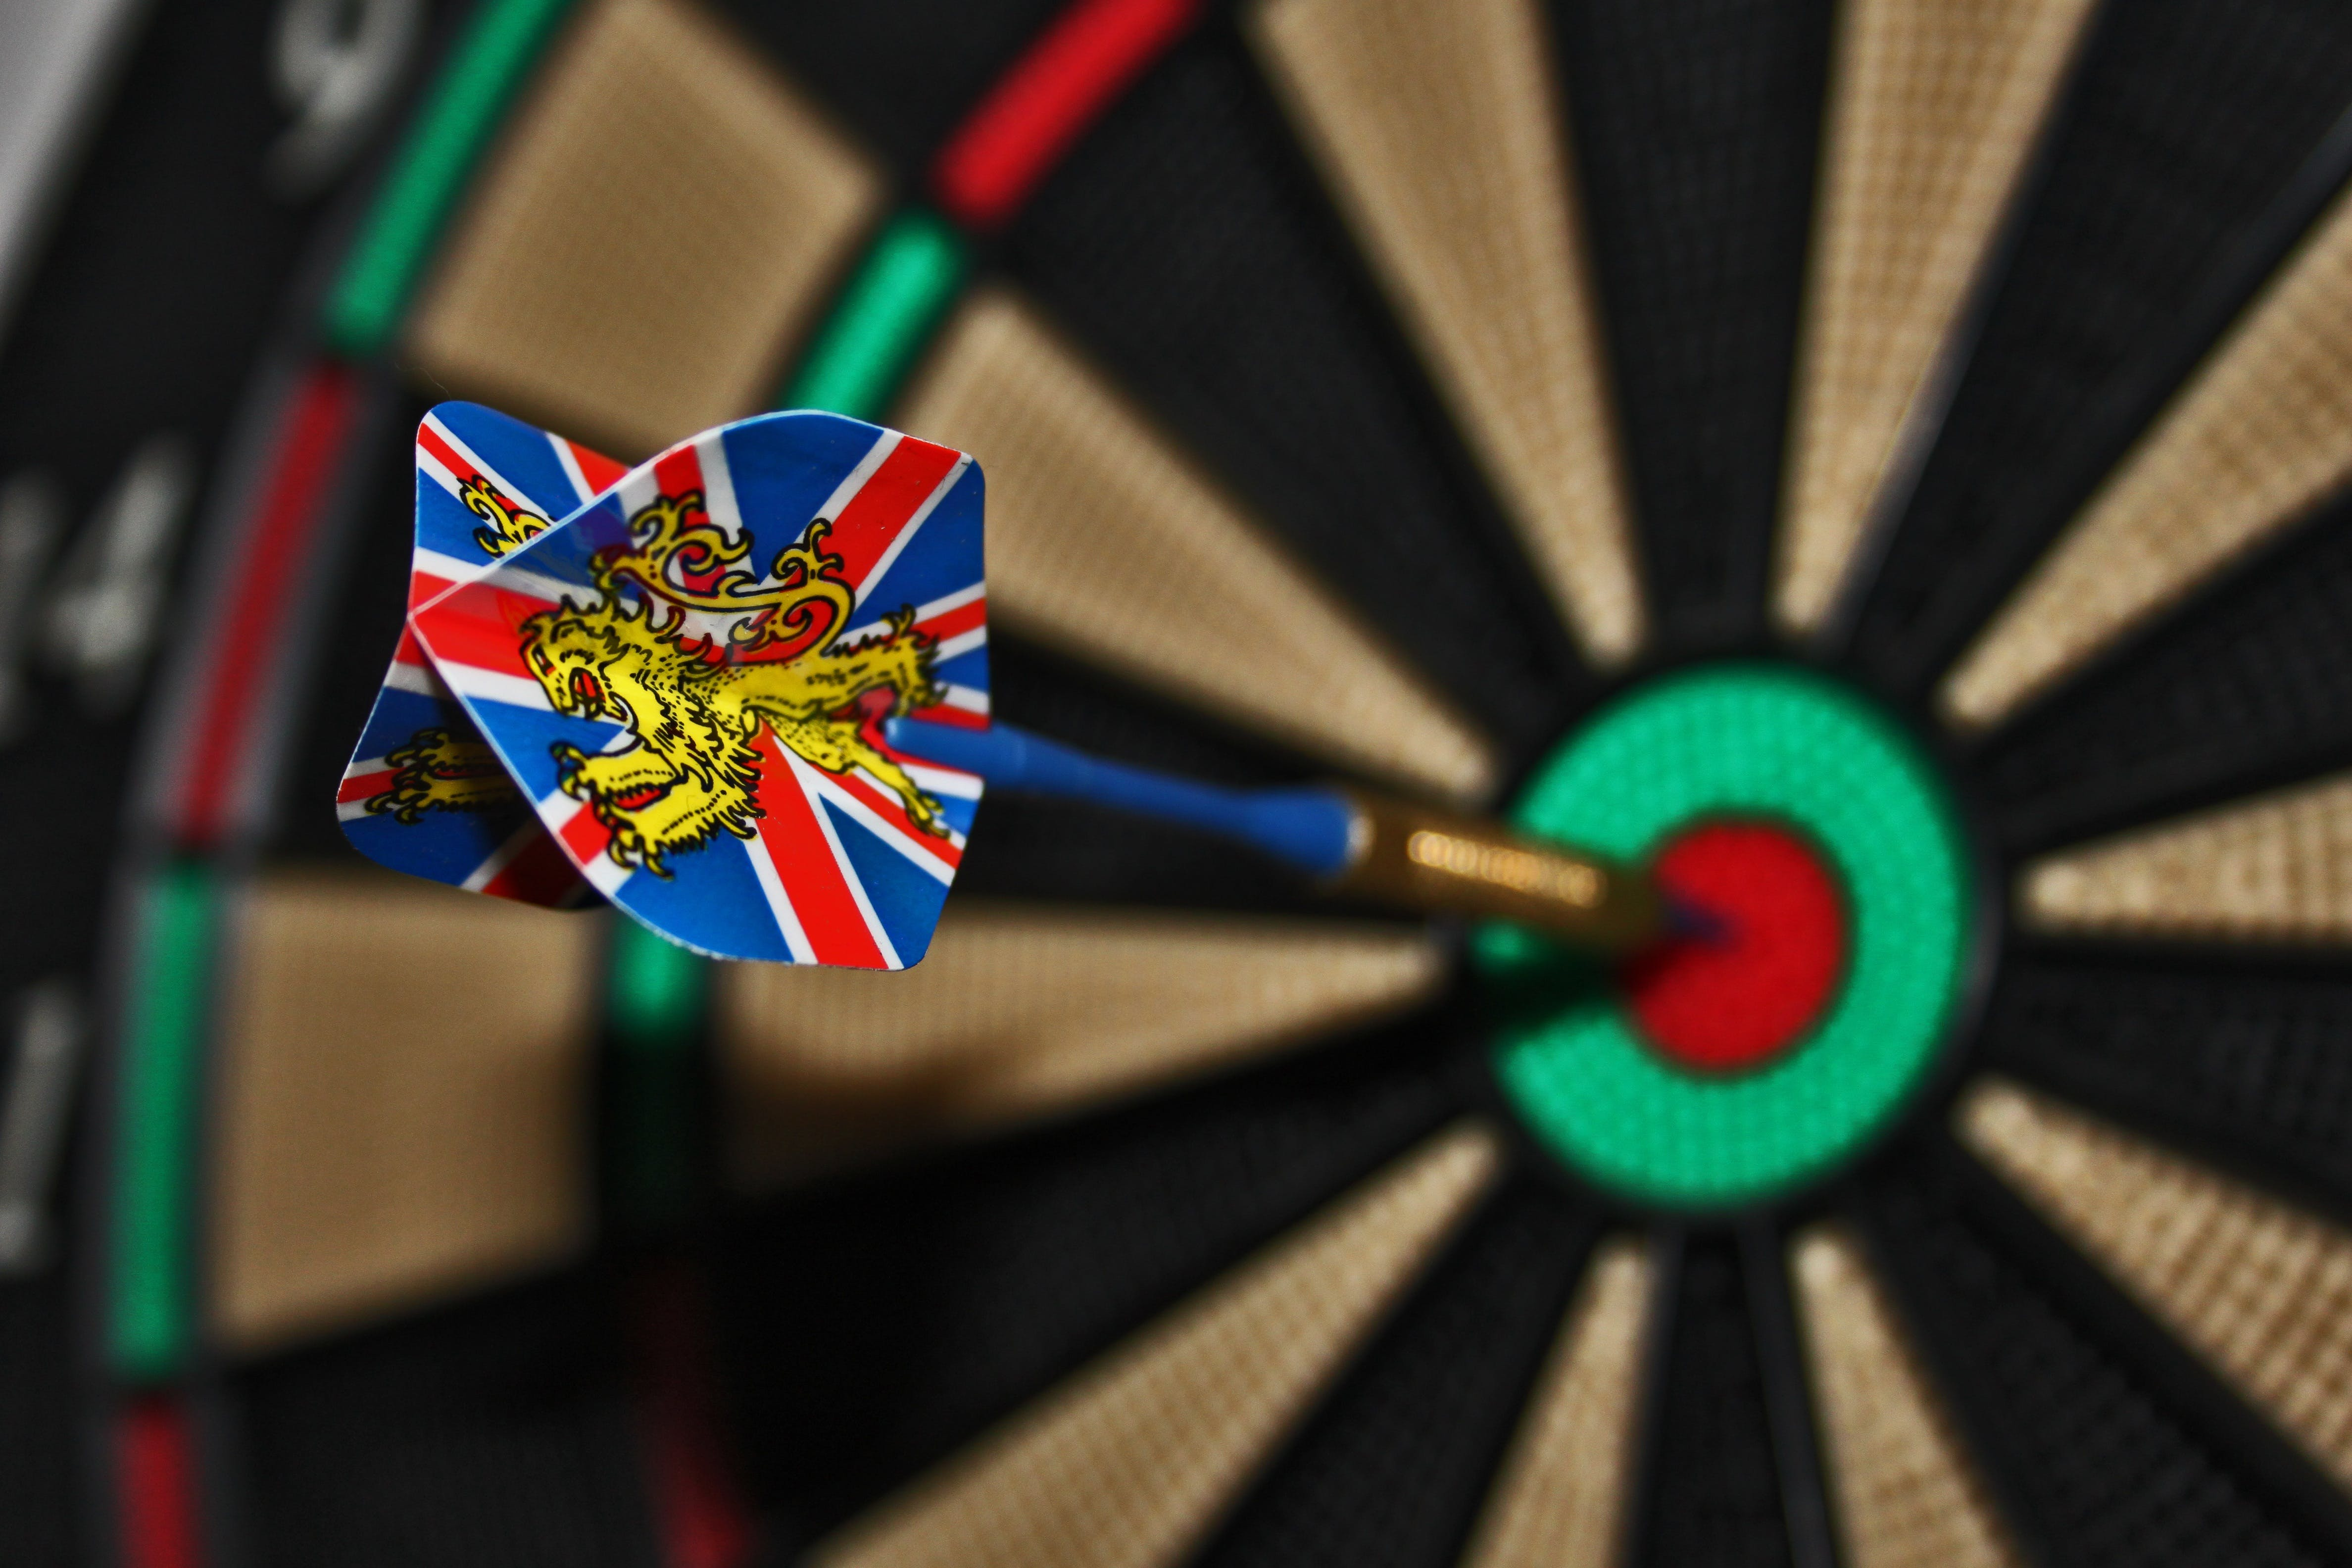 Blue Brown Dart on Red Green Black Dartboard